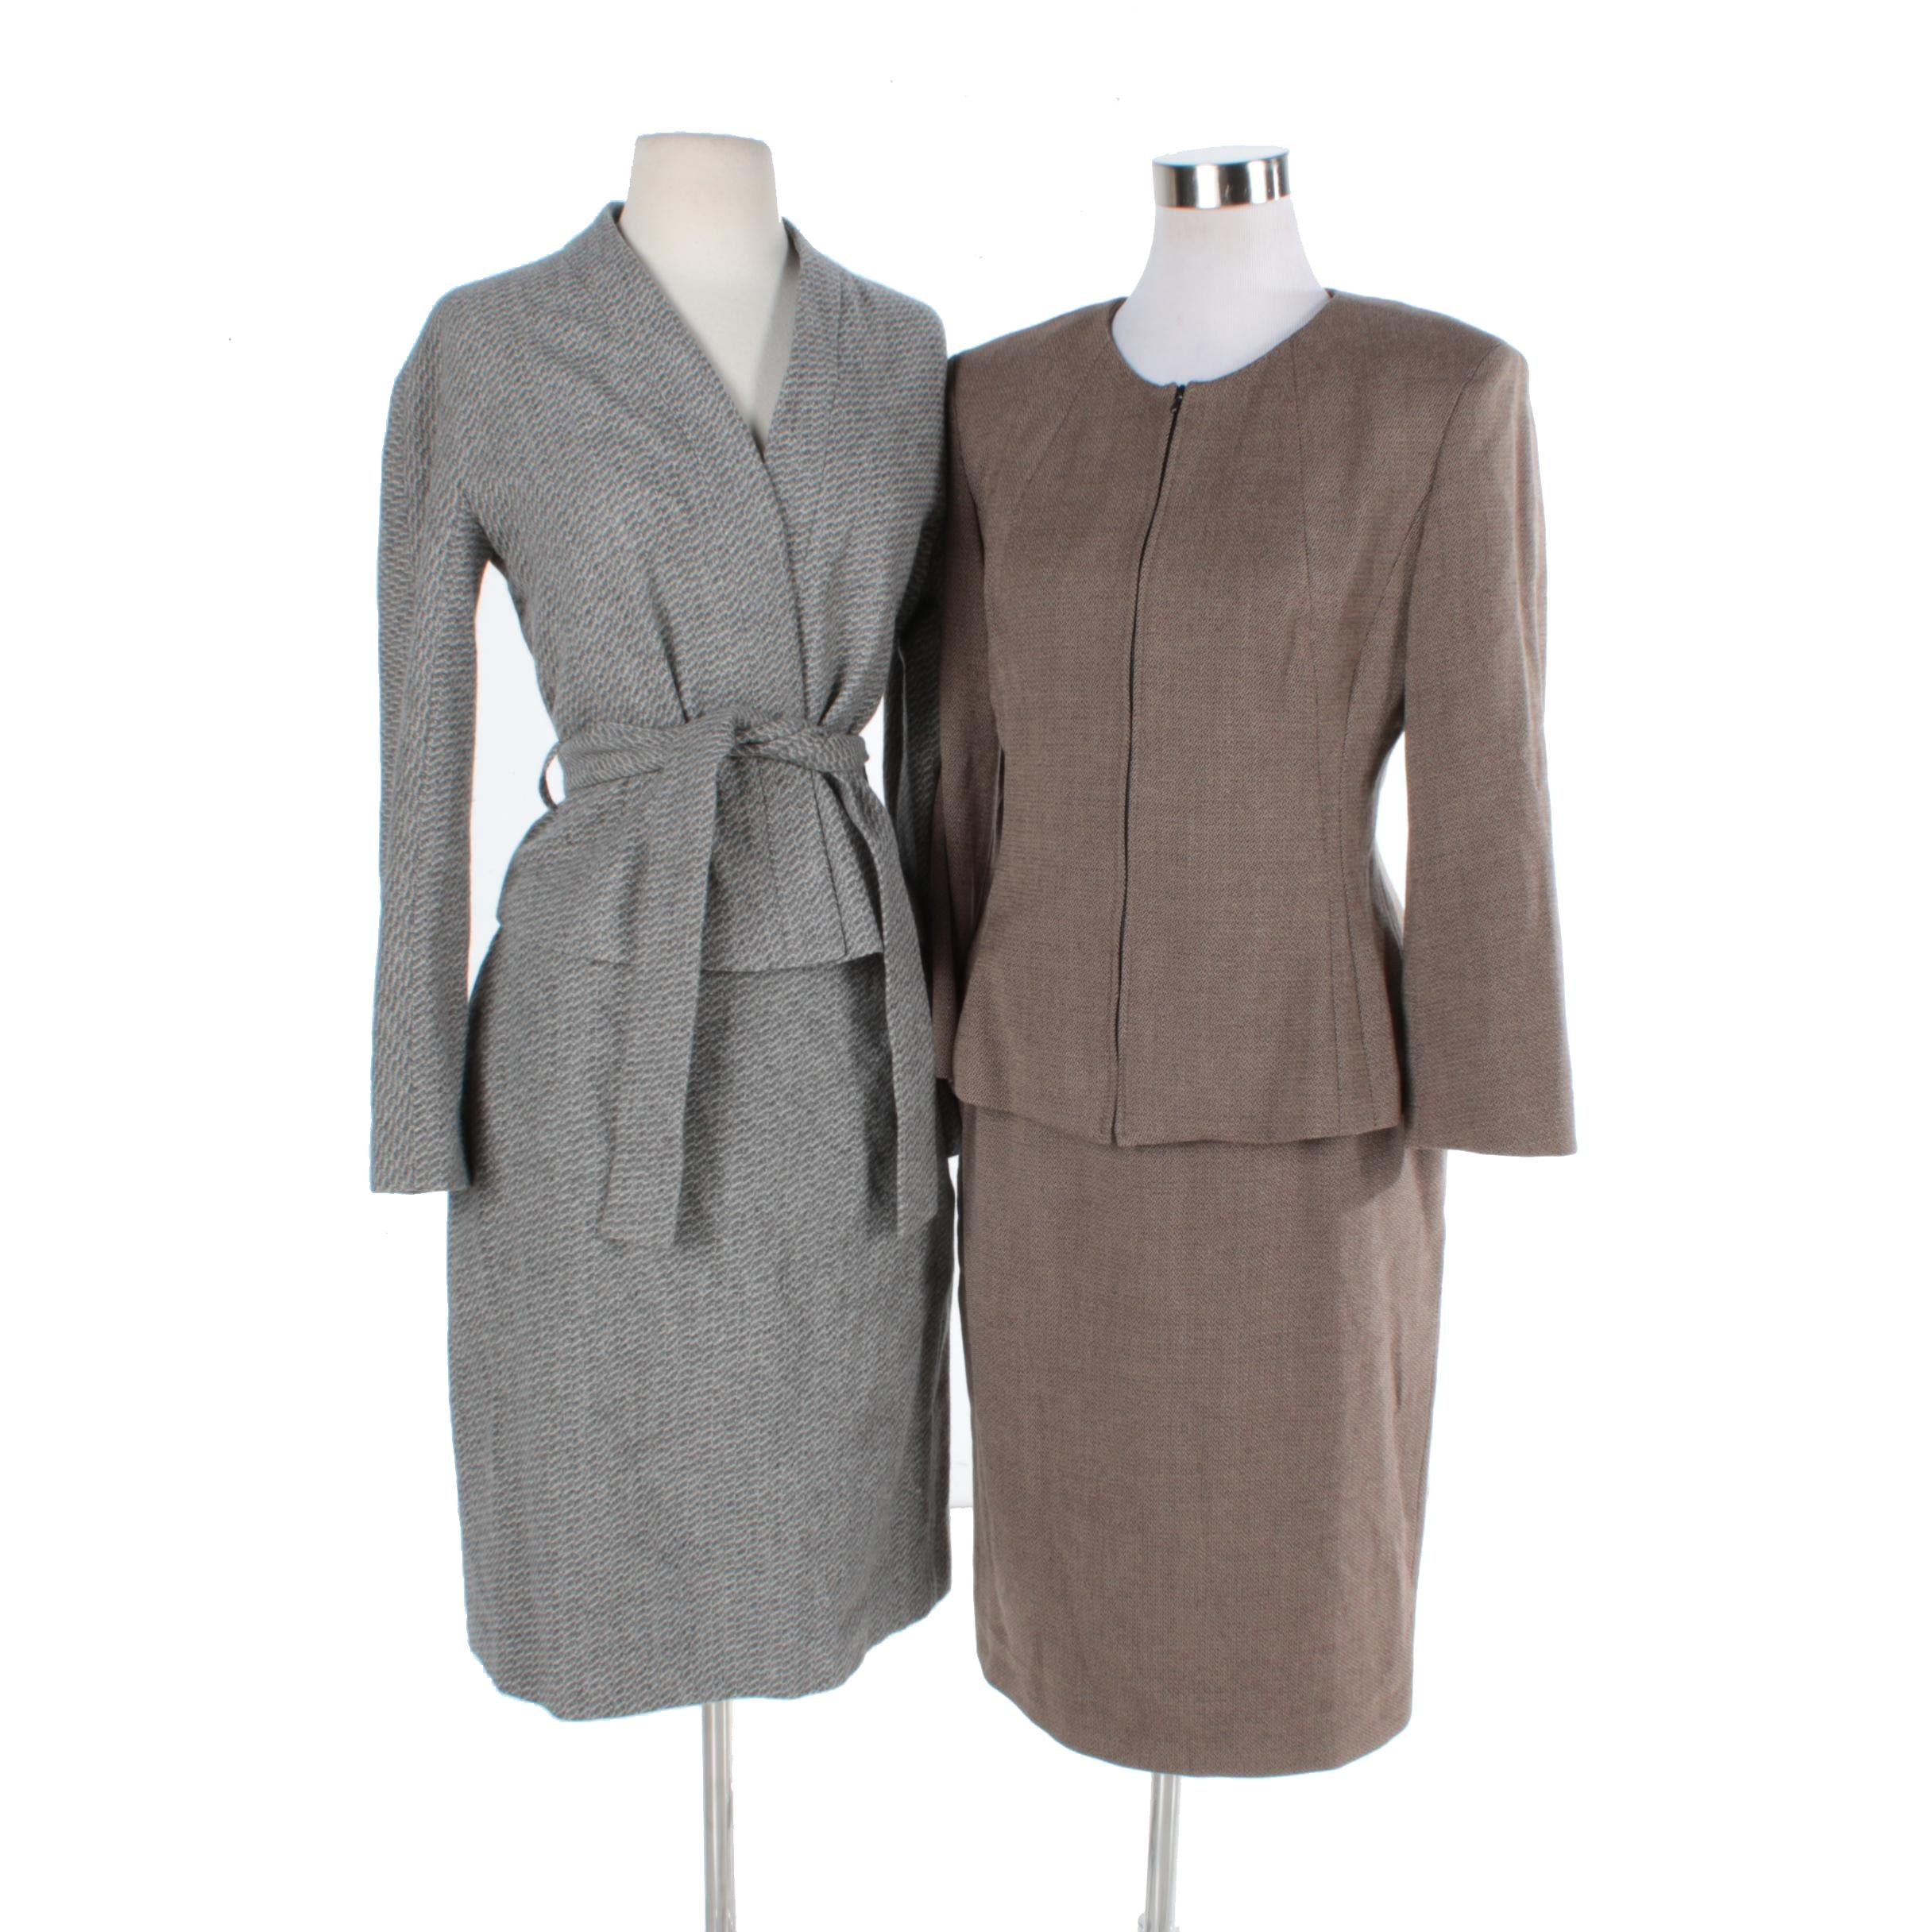 Skirt Suits Including Charles Chang-Lima